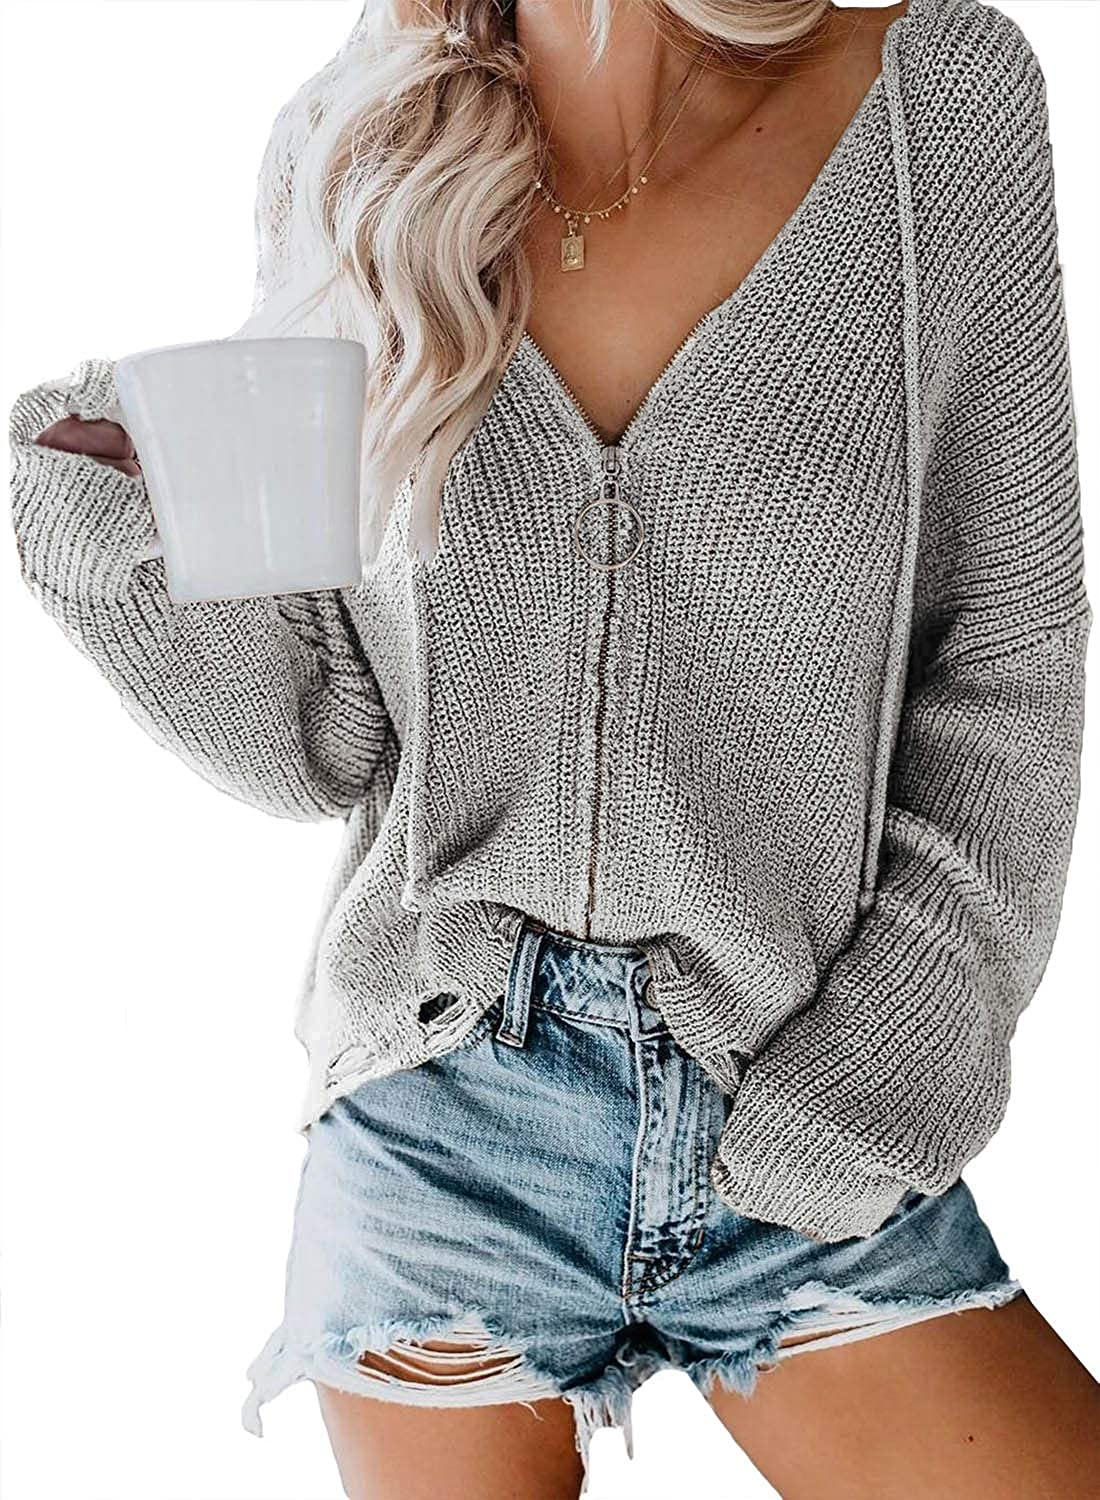 Actloe Cardigan Sweaters for Women Long Sleeve Zip Up Hoodie Knit Sweater Lightweight Fall V Neck Tops Casual Coat